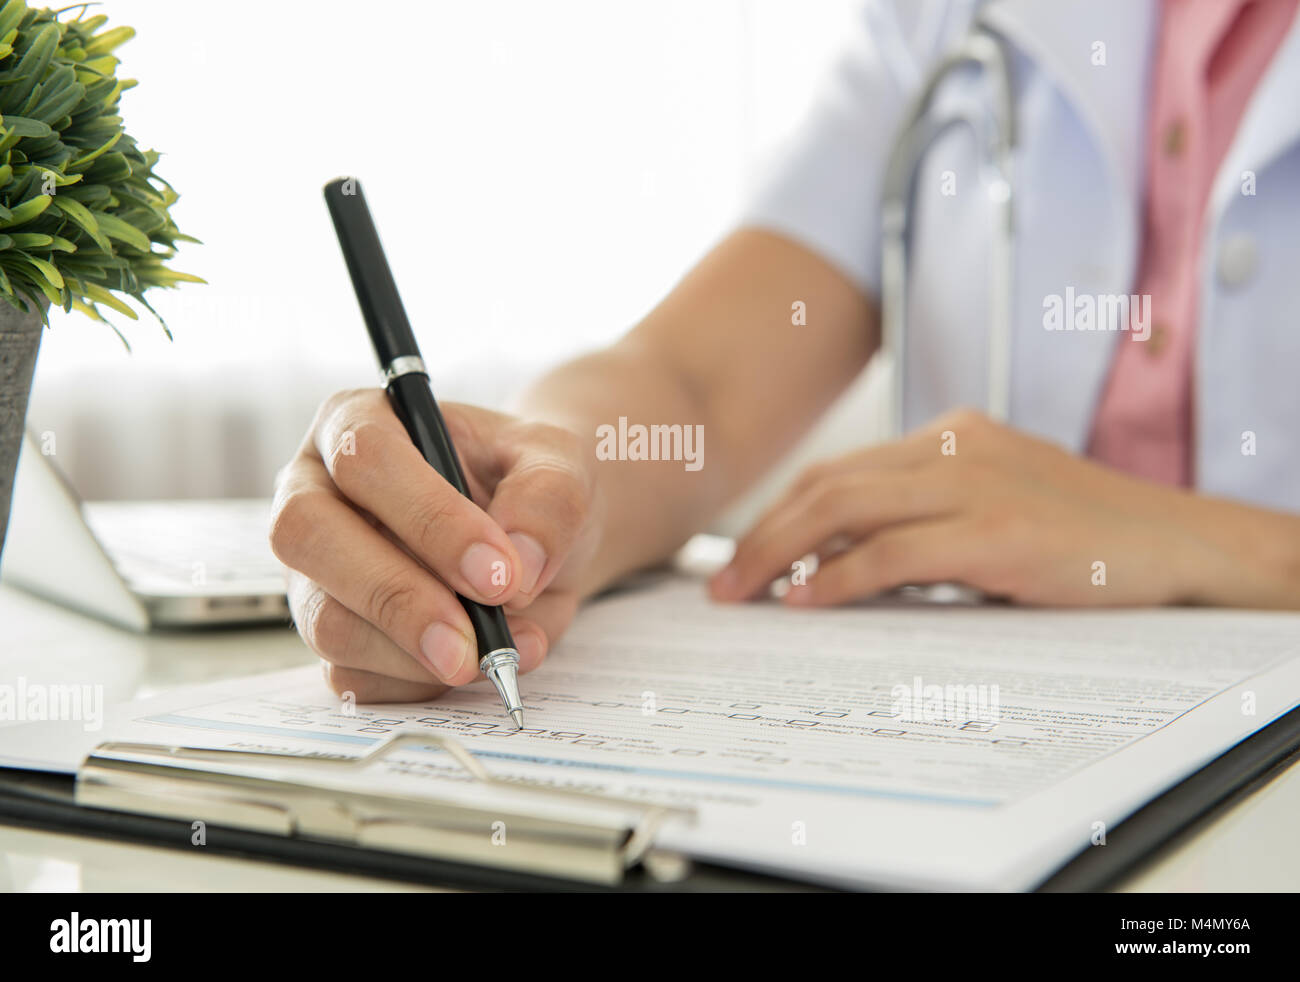 Doctors are recorded patient data for analysis. - Stock Image